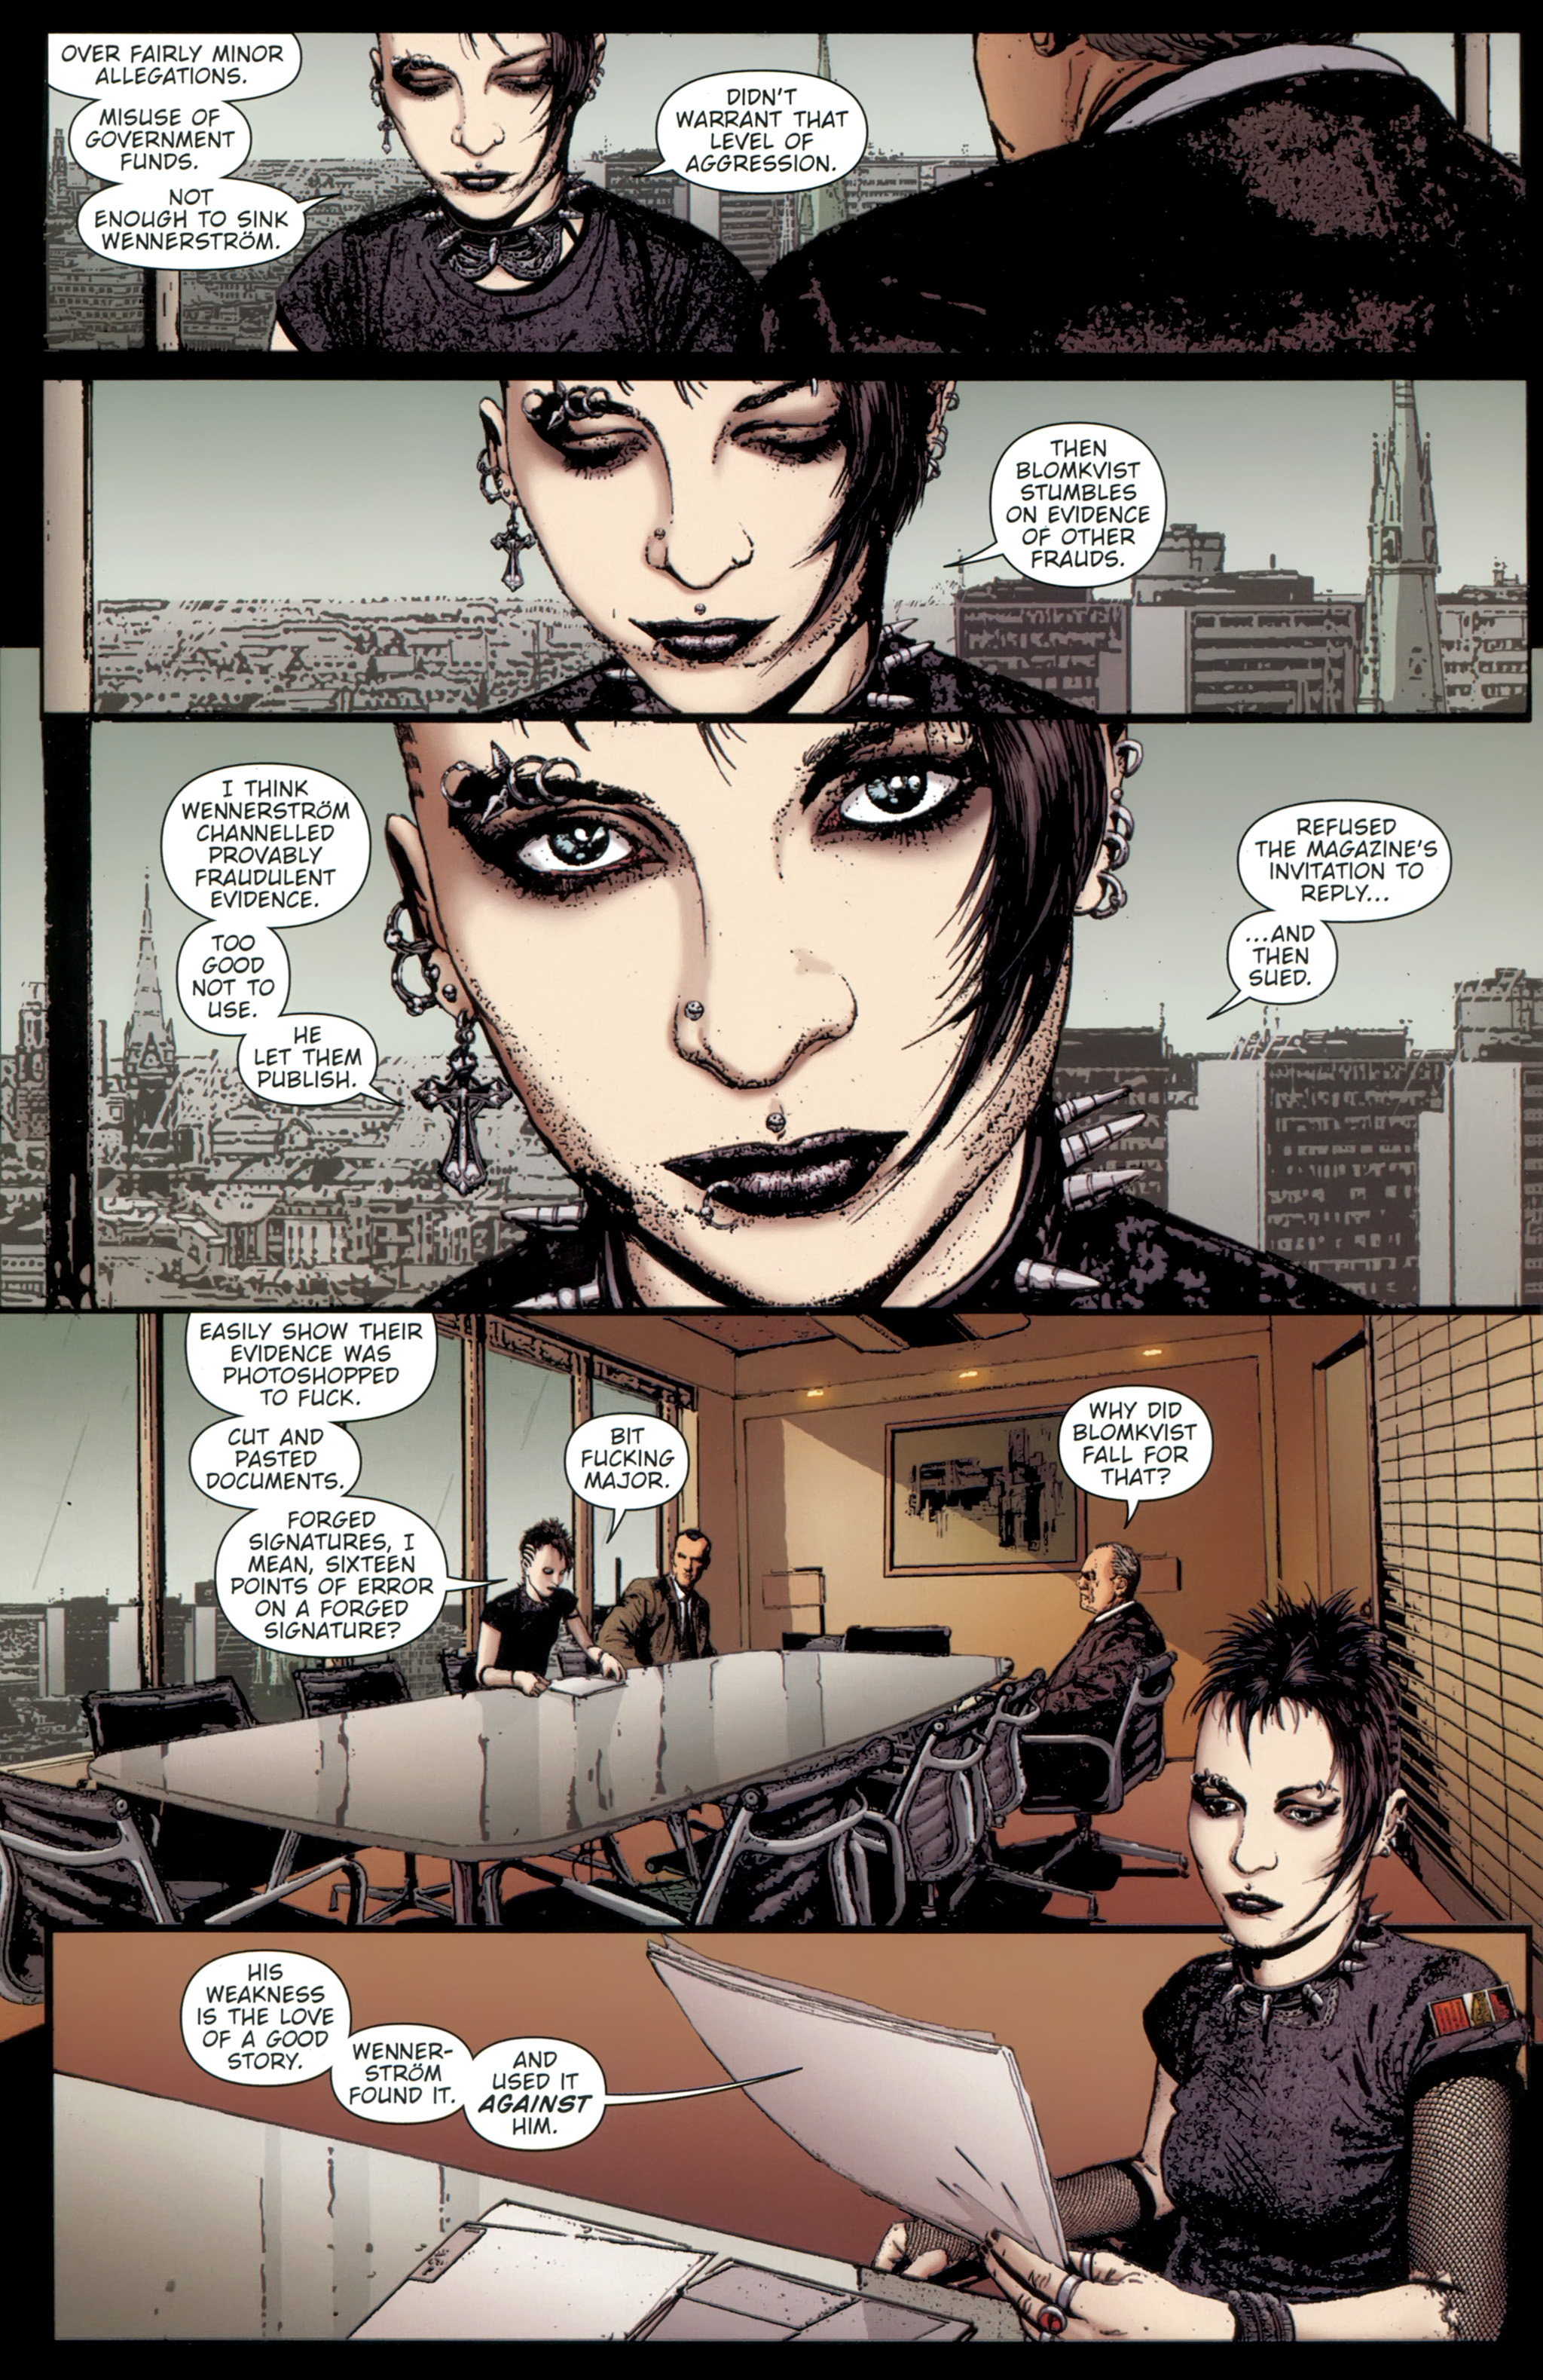 Read online The Girl With the Dragon Tattoo comic -  Issue # TPB 1 - 23